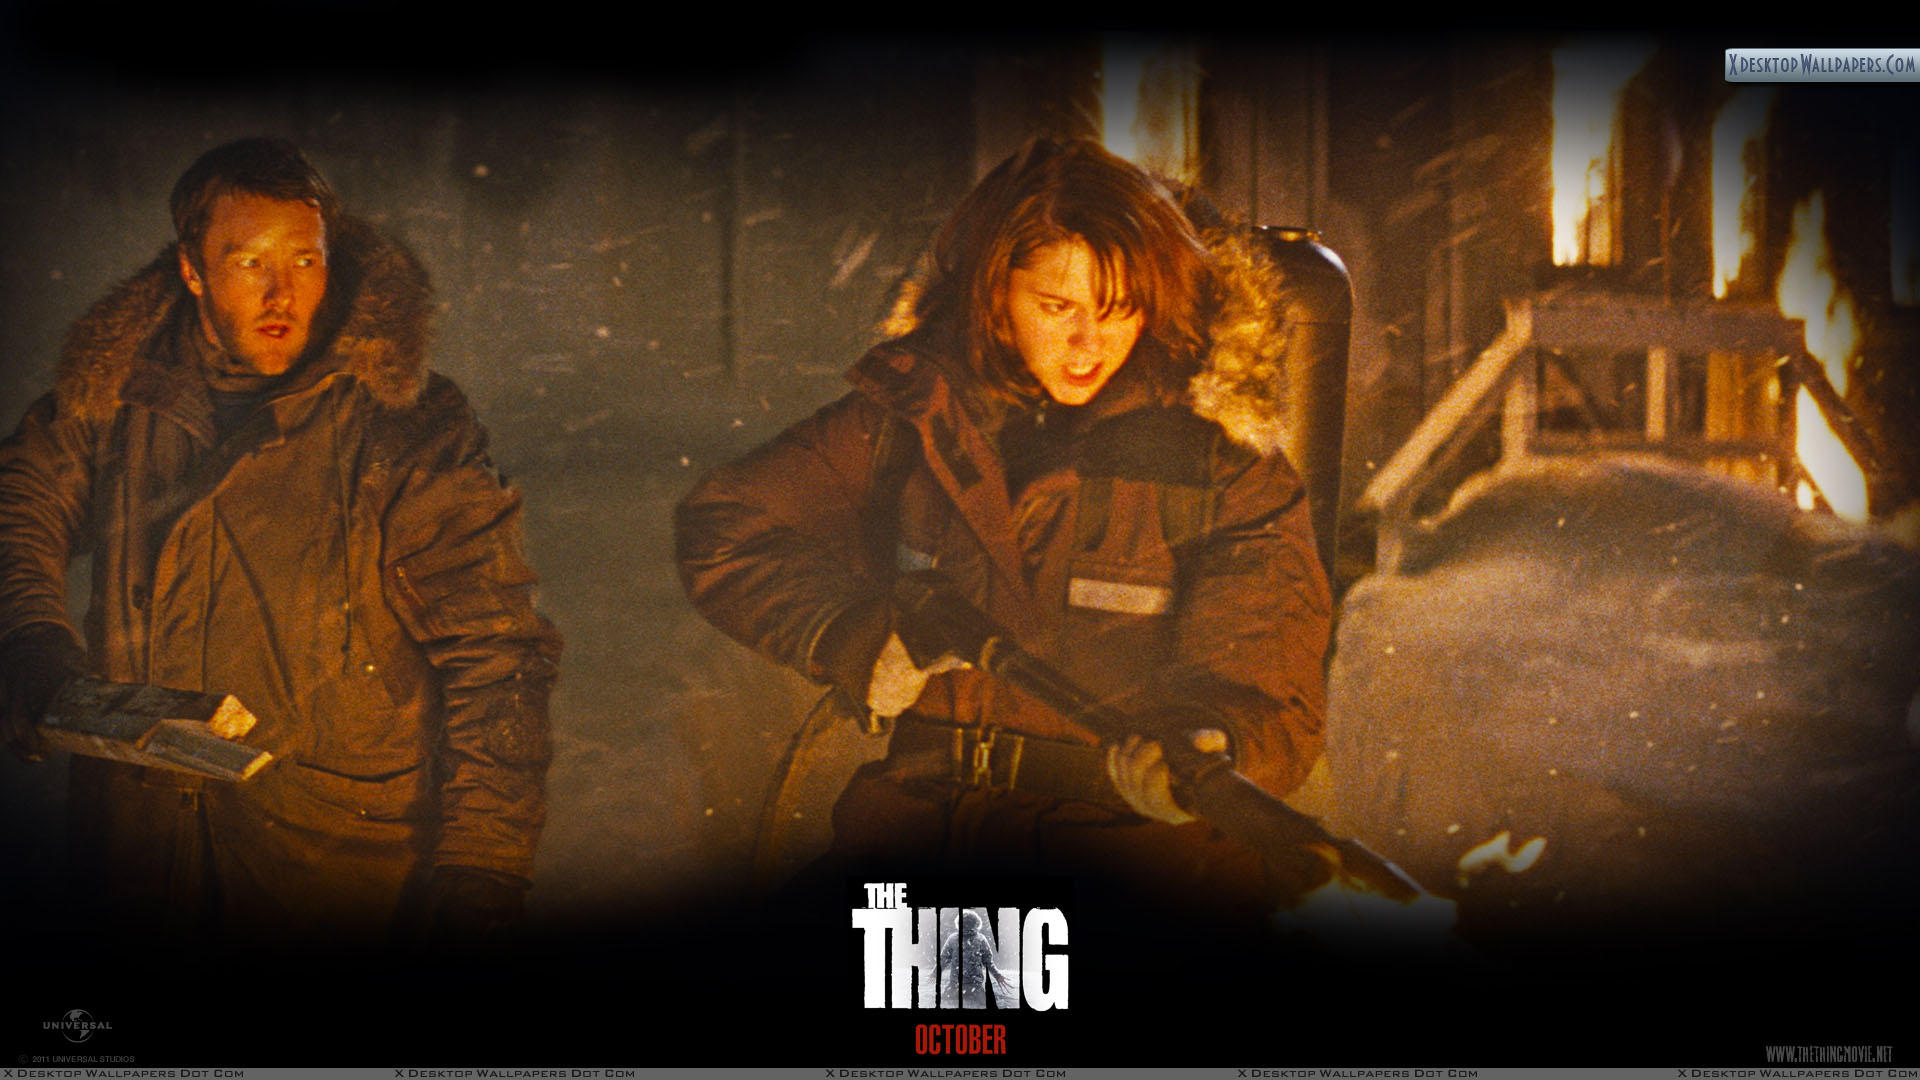 the thing – joel edgerton and mary elizabeth winstead wallpaper